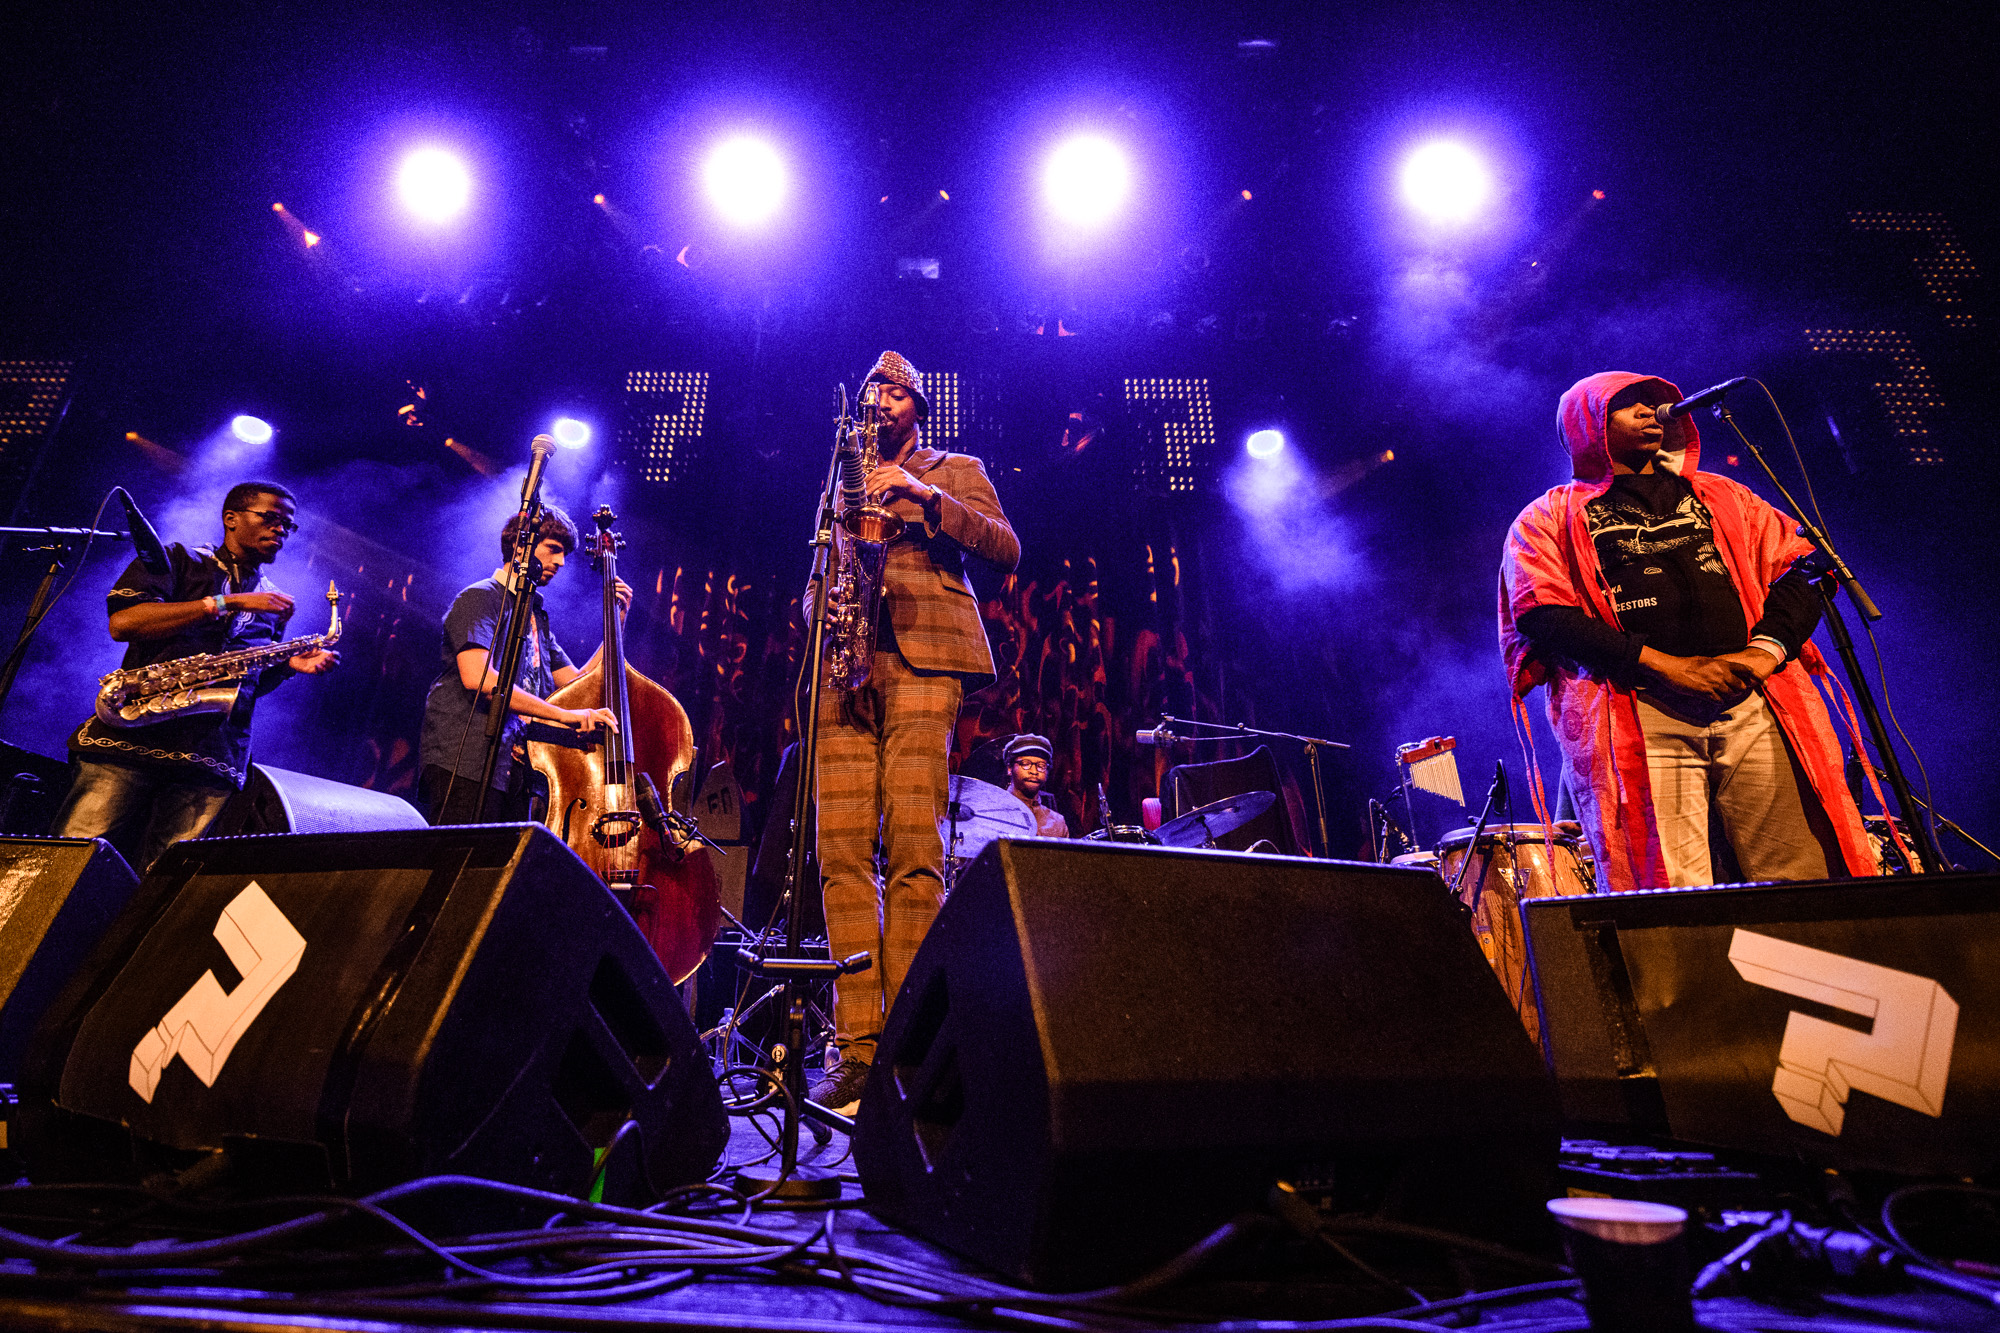 Listen to Shabaka & The Ancestors' powerful performance at LGW17, curated by James Holden